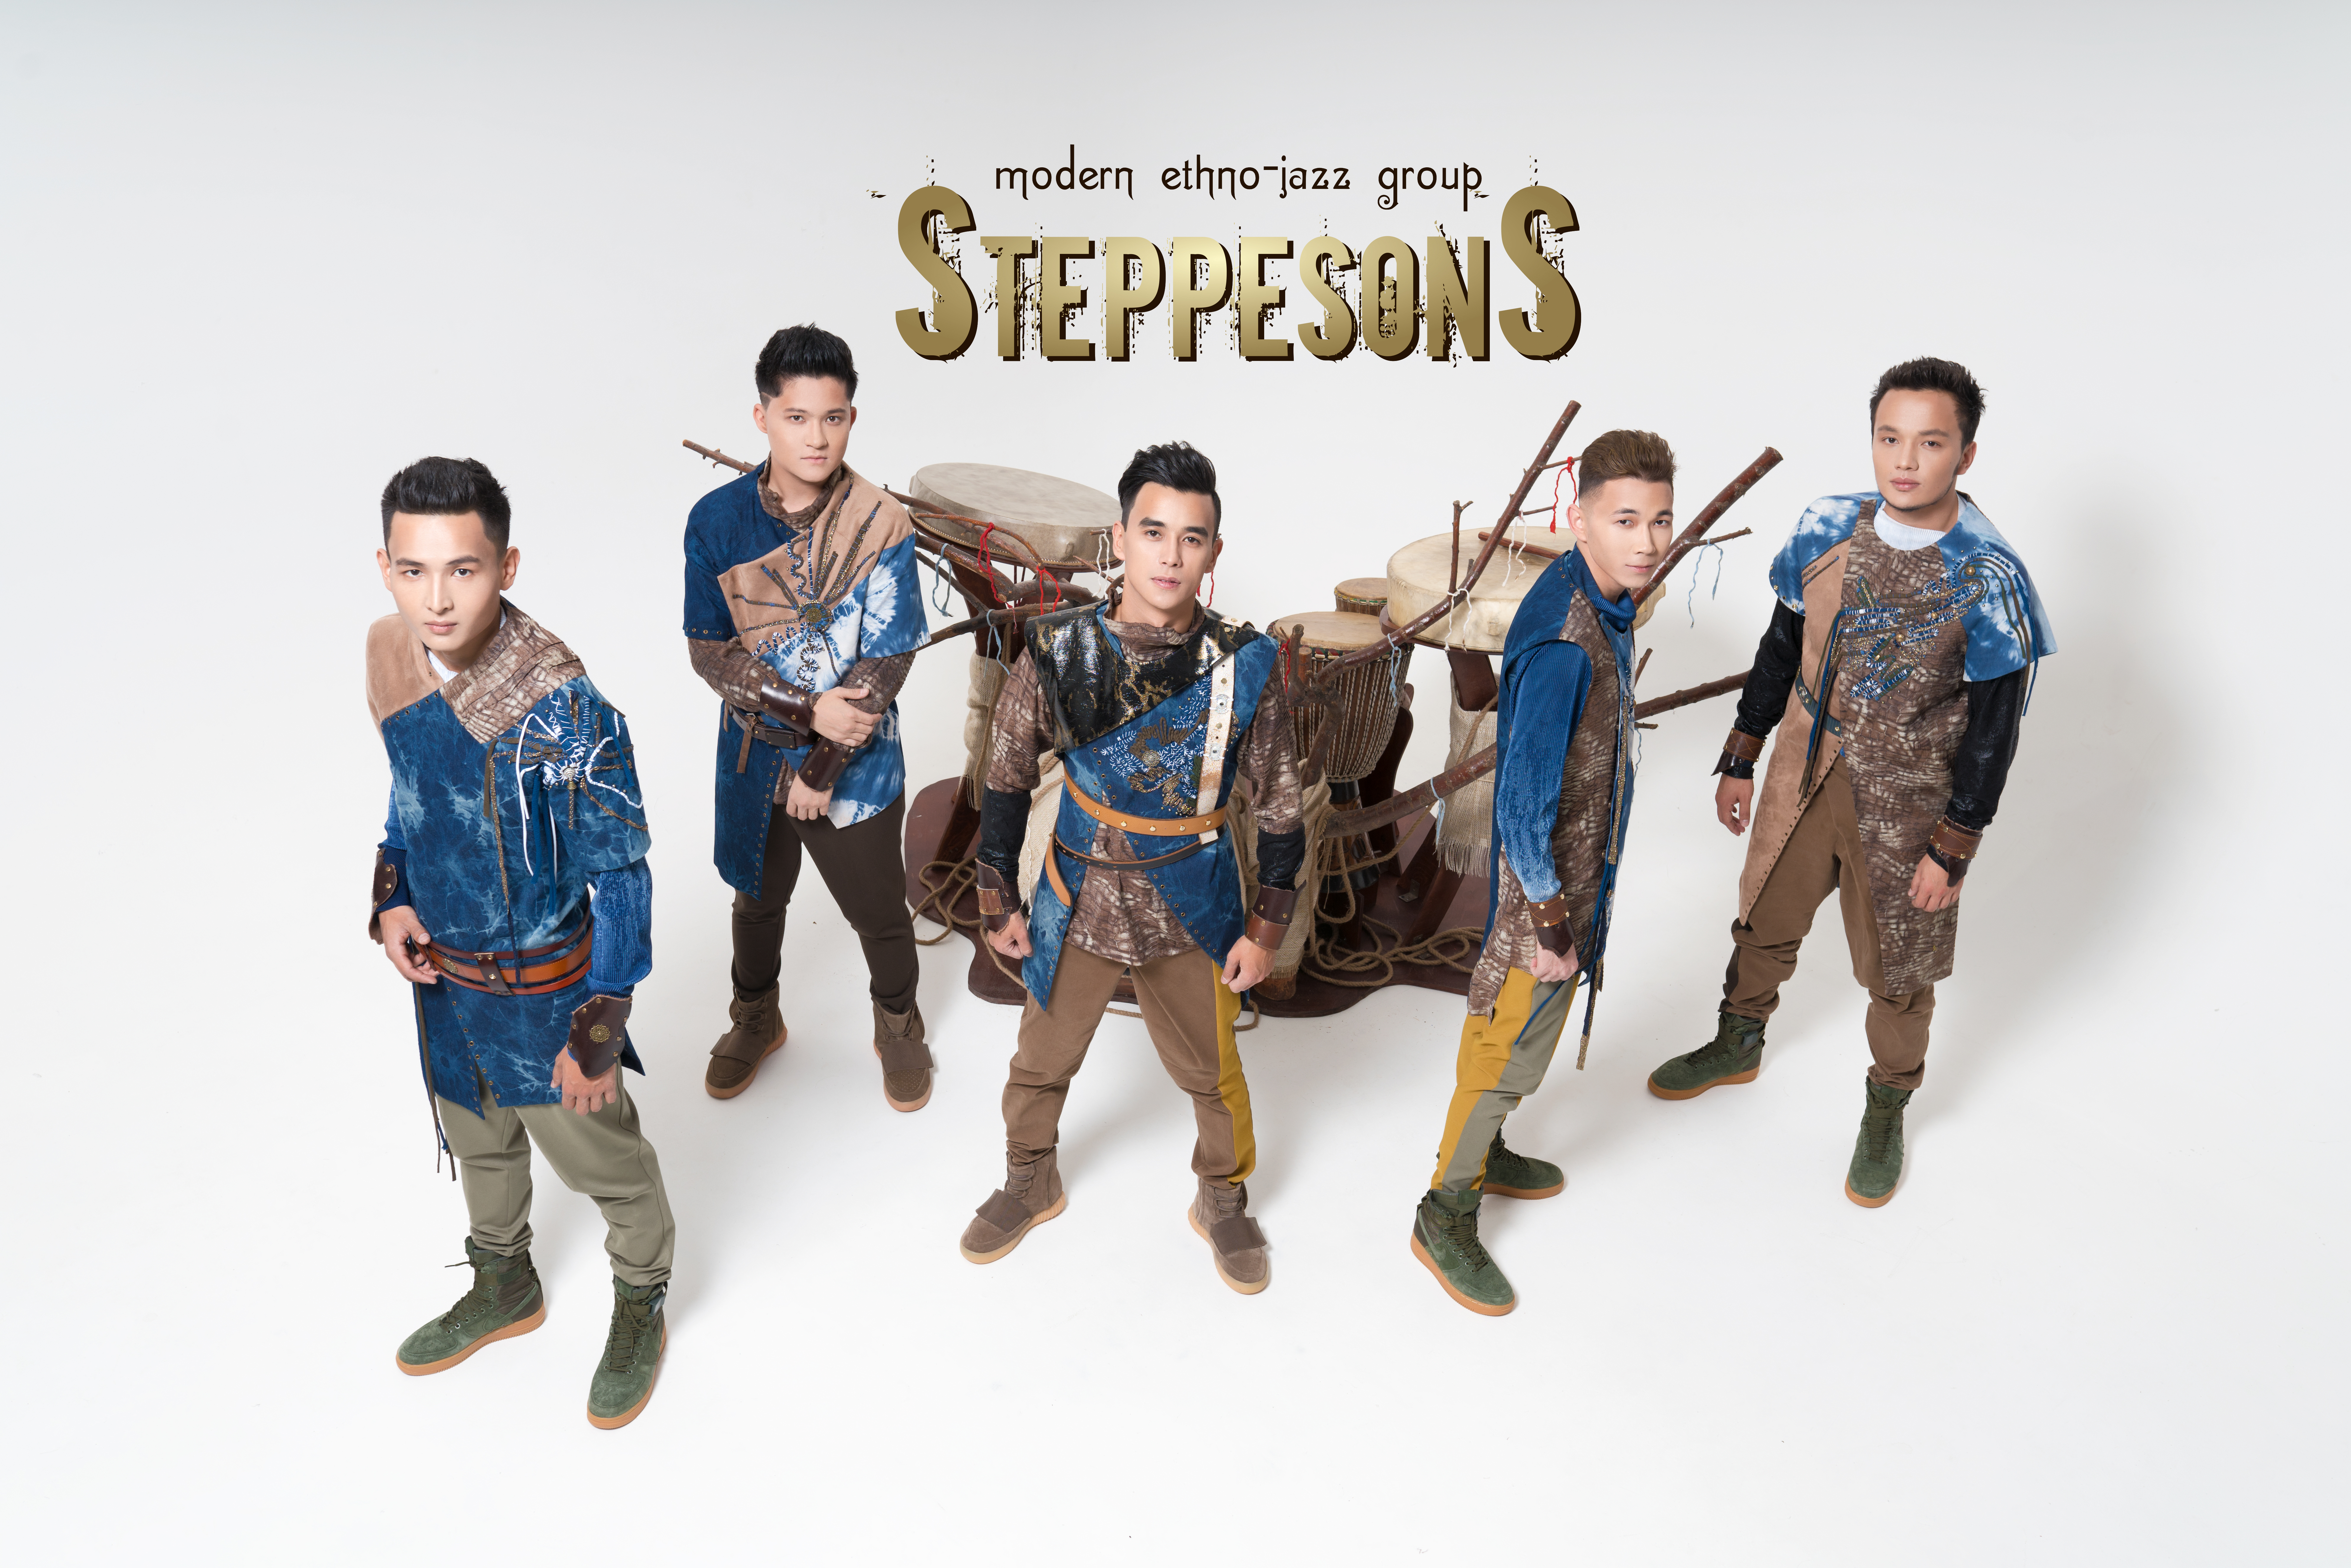 Steppe Sons 1